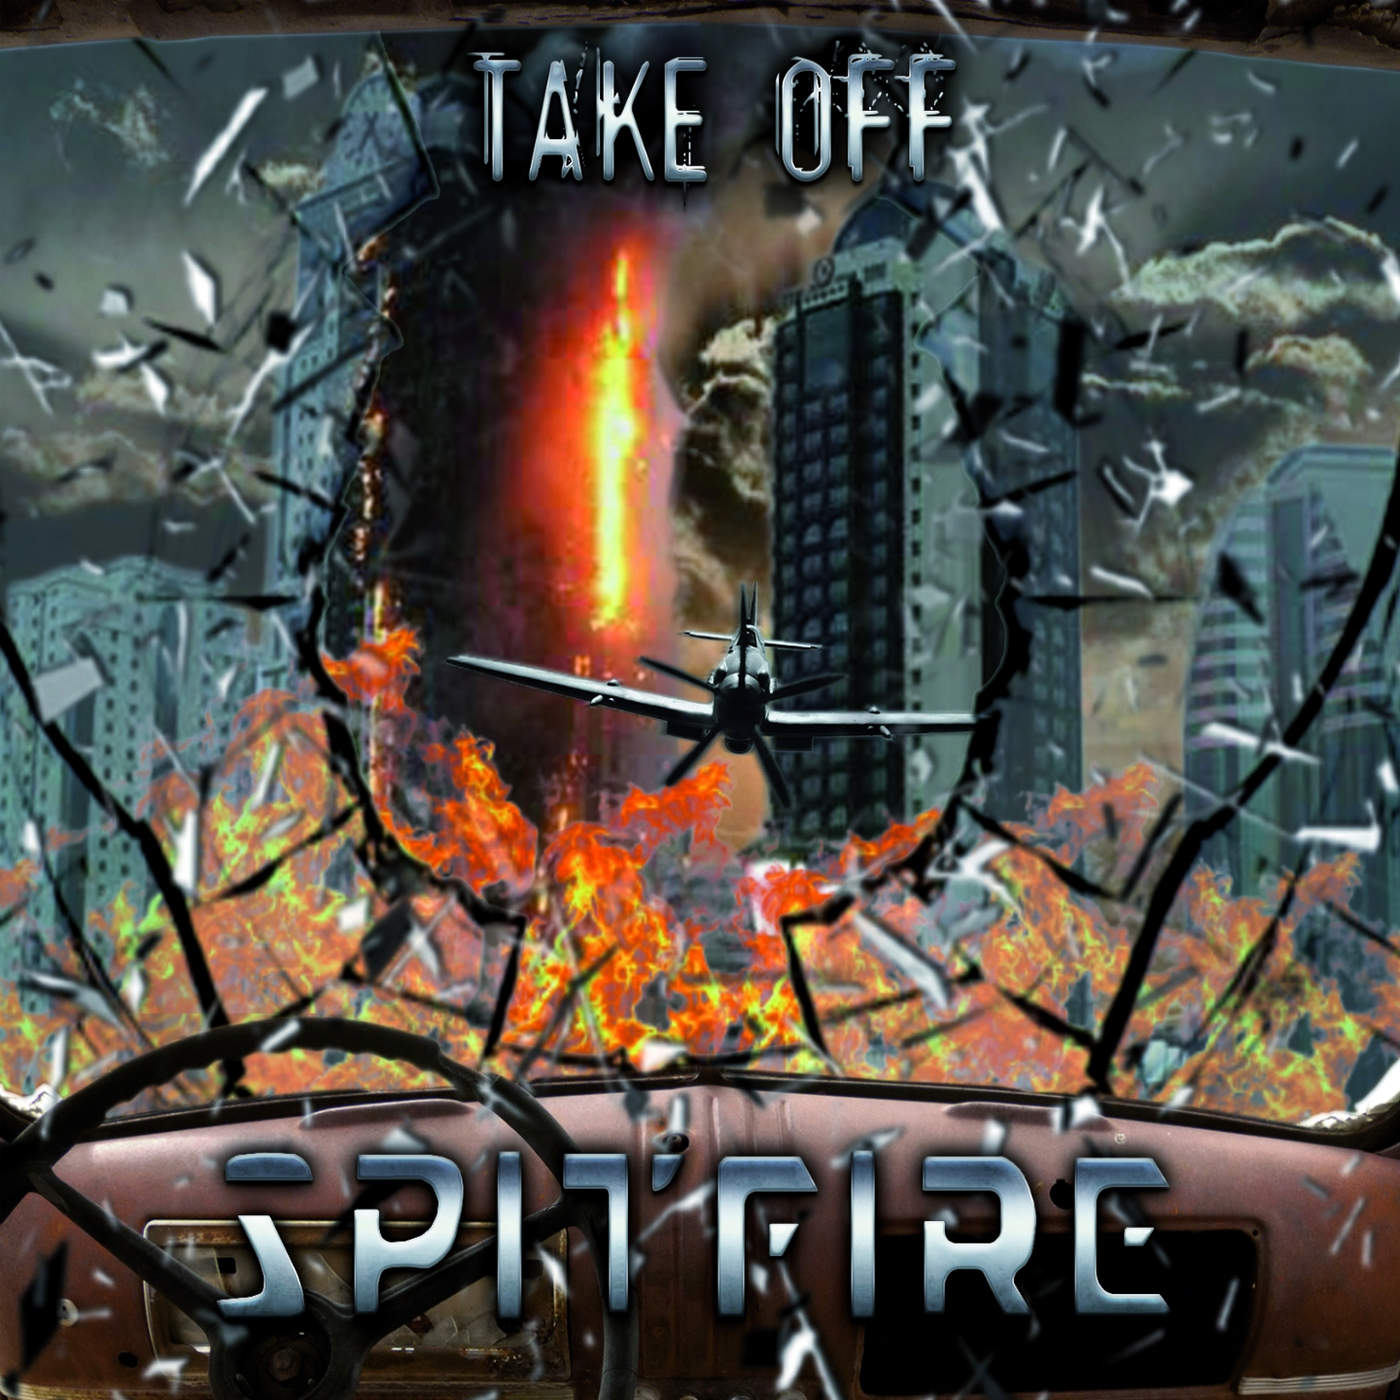 spitfire take off EP one standing review